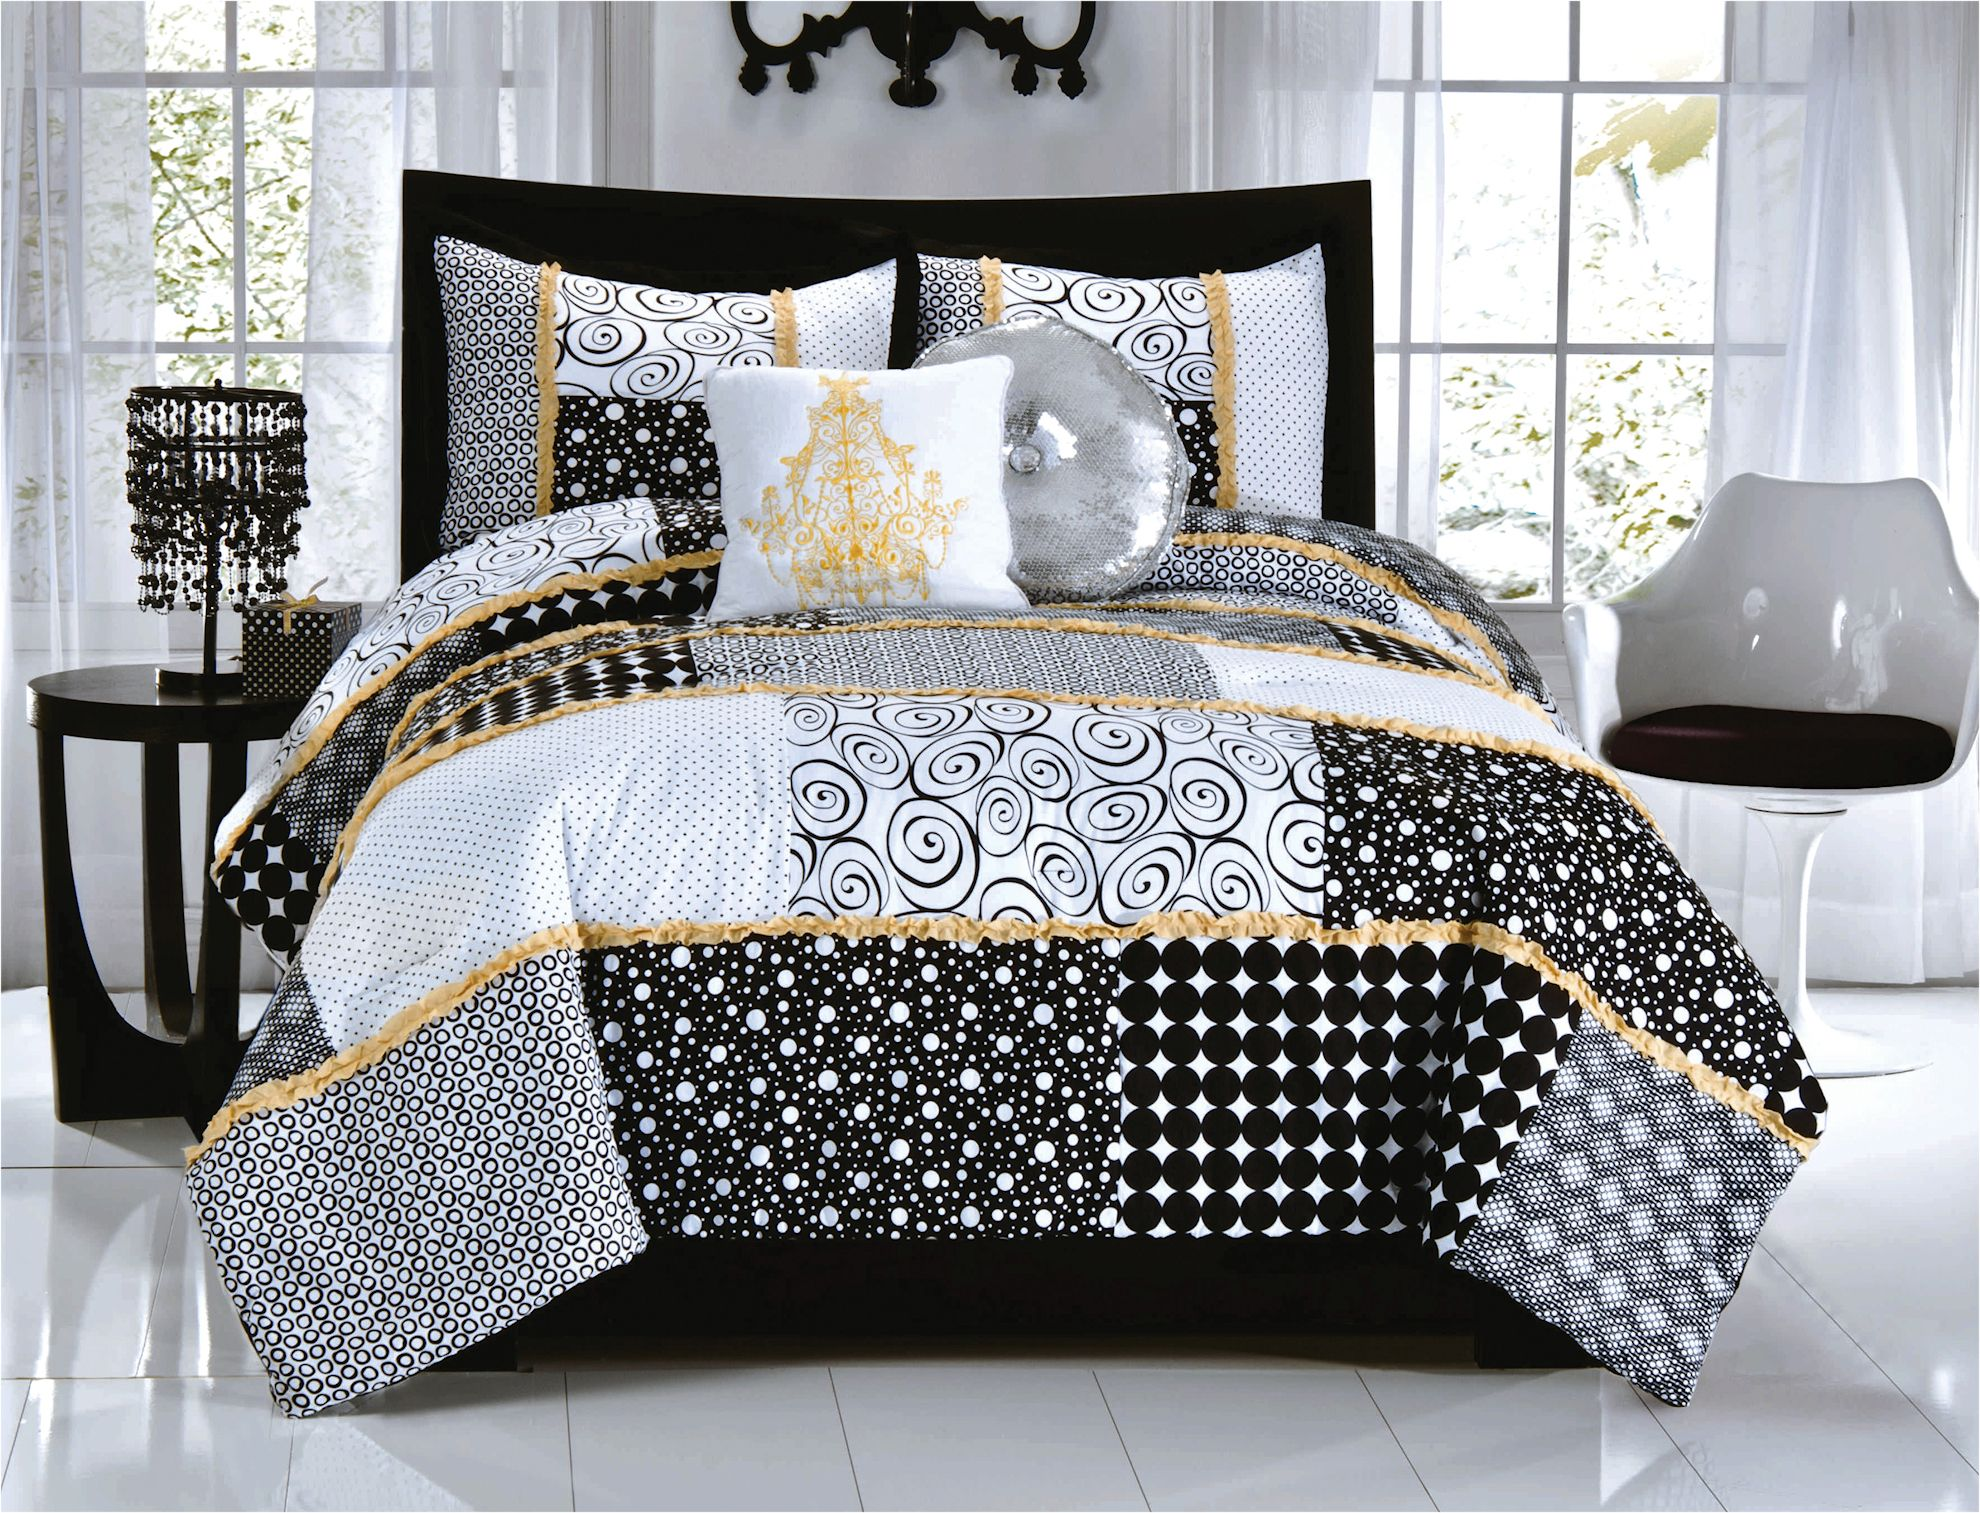 Elegant Black White Dot Scroll Bedding Twin Full Queen Comforter Set Gold Yellow Ruffle